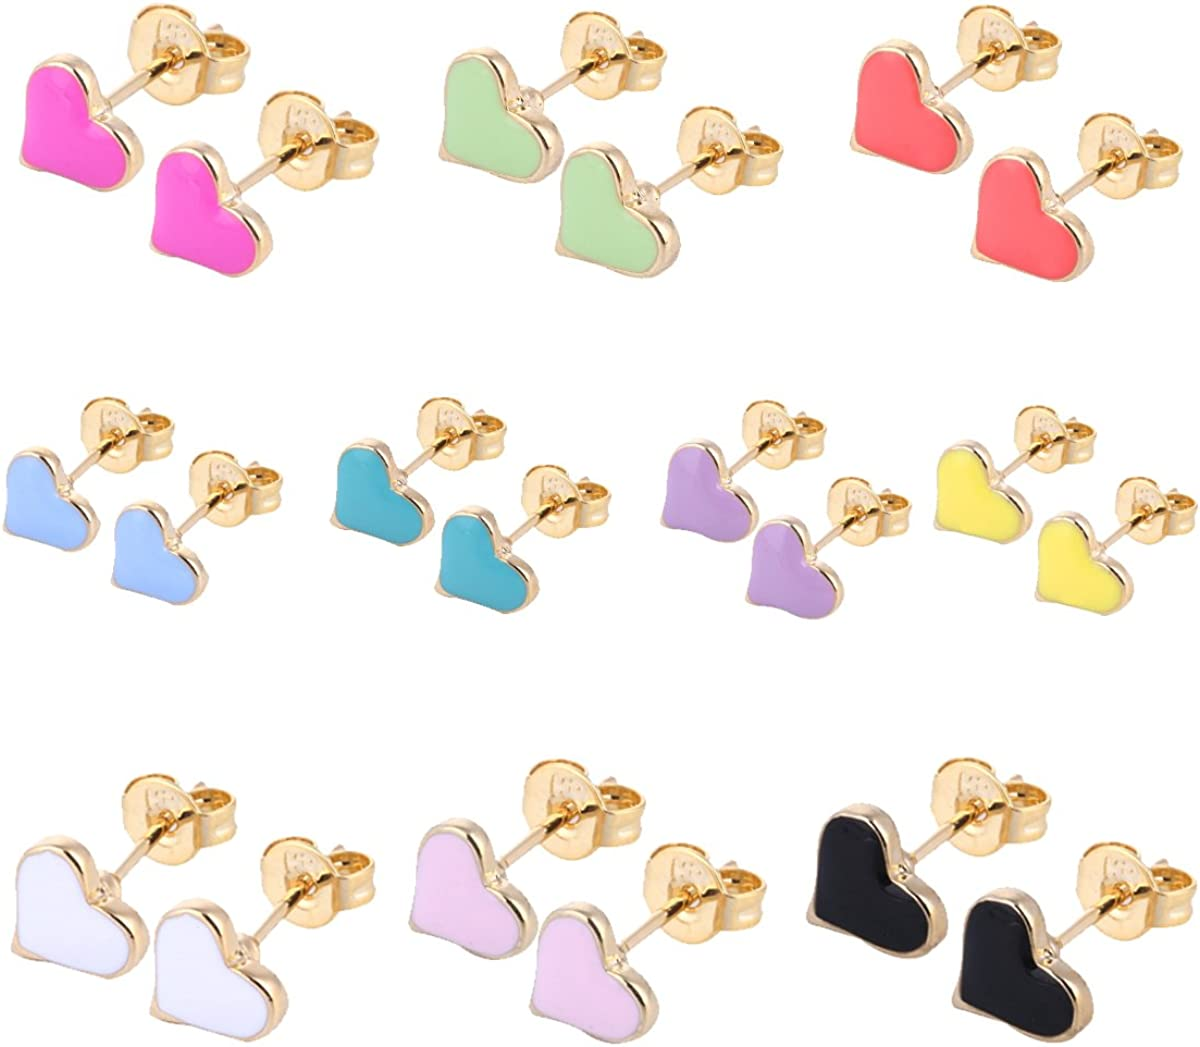 10/8/33 Pairs 18K Gold Plated Small Cute Simple Post Stud Earrings Set for Girls Kids Gold Tone Mix and Match 61YiKUGScgL